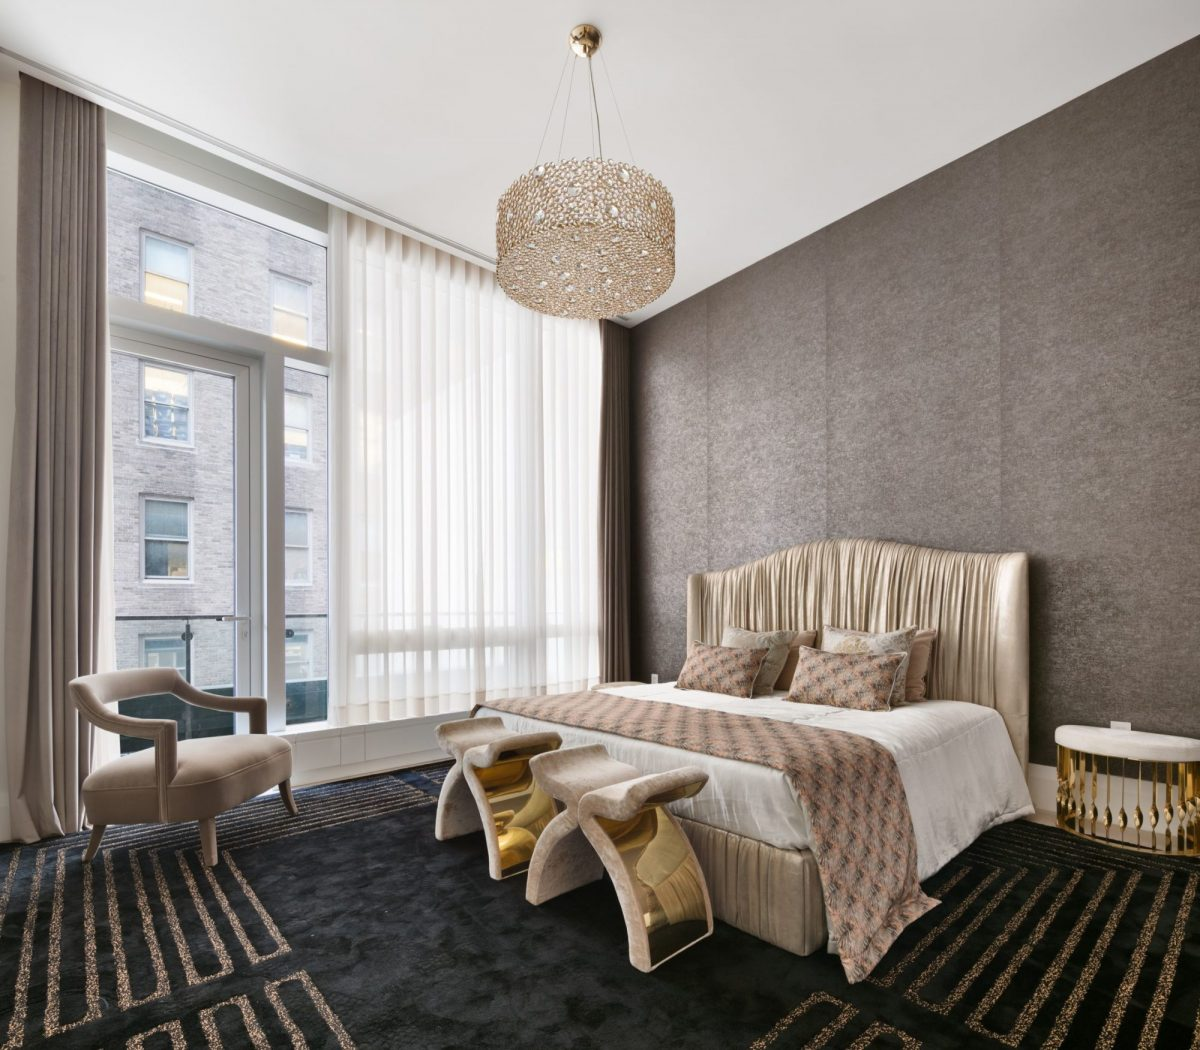 5covet-house_nyc-_-imponent-master-bedroom-1200x1200.jpg